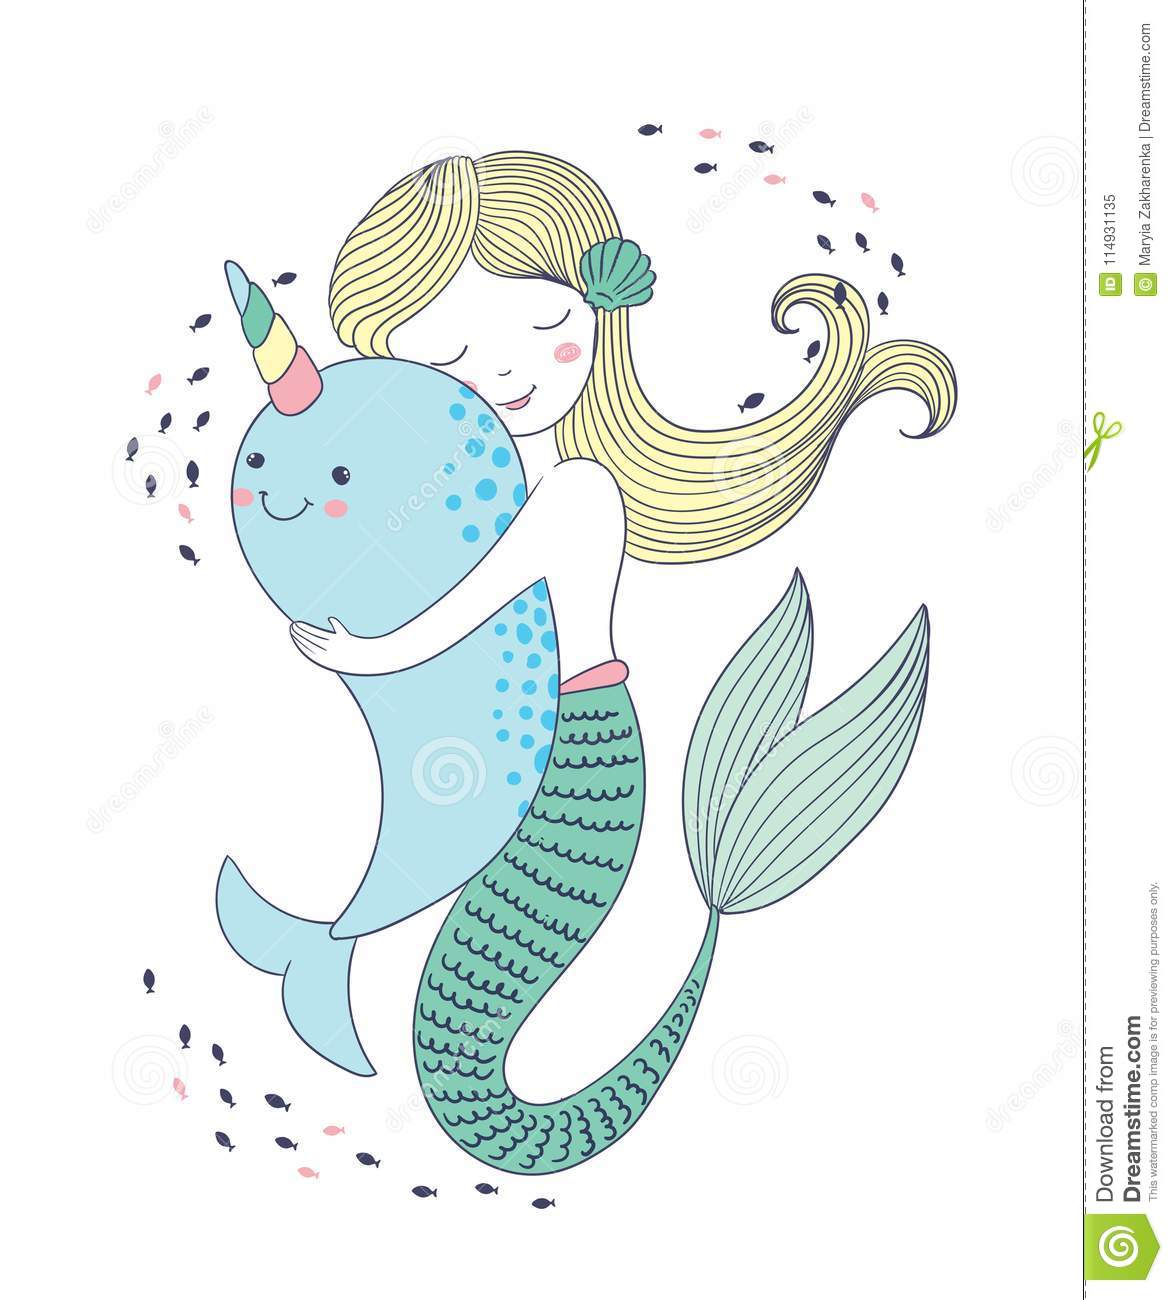 Vector Illustration Of Cute Kawaii Mermaid Hugs A Whale Hand Drawn